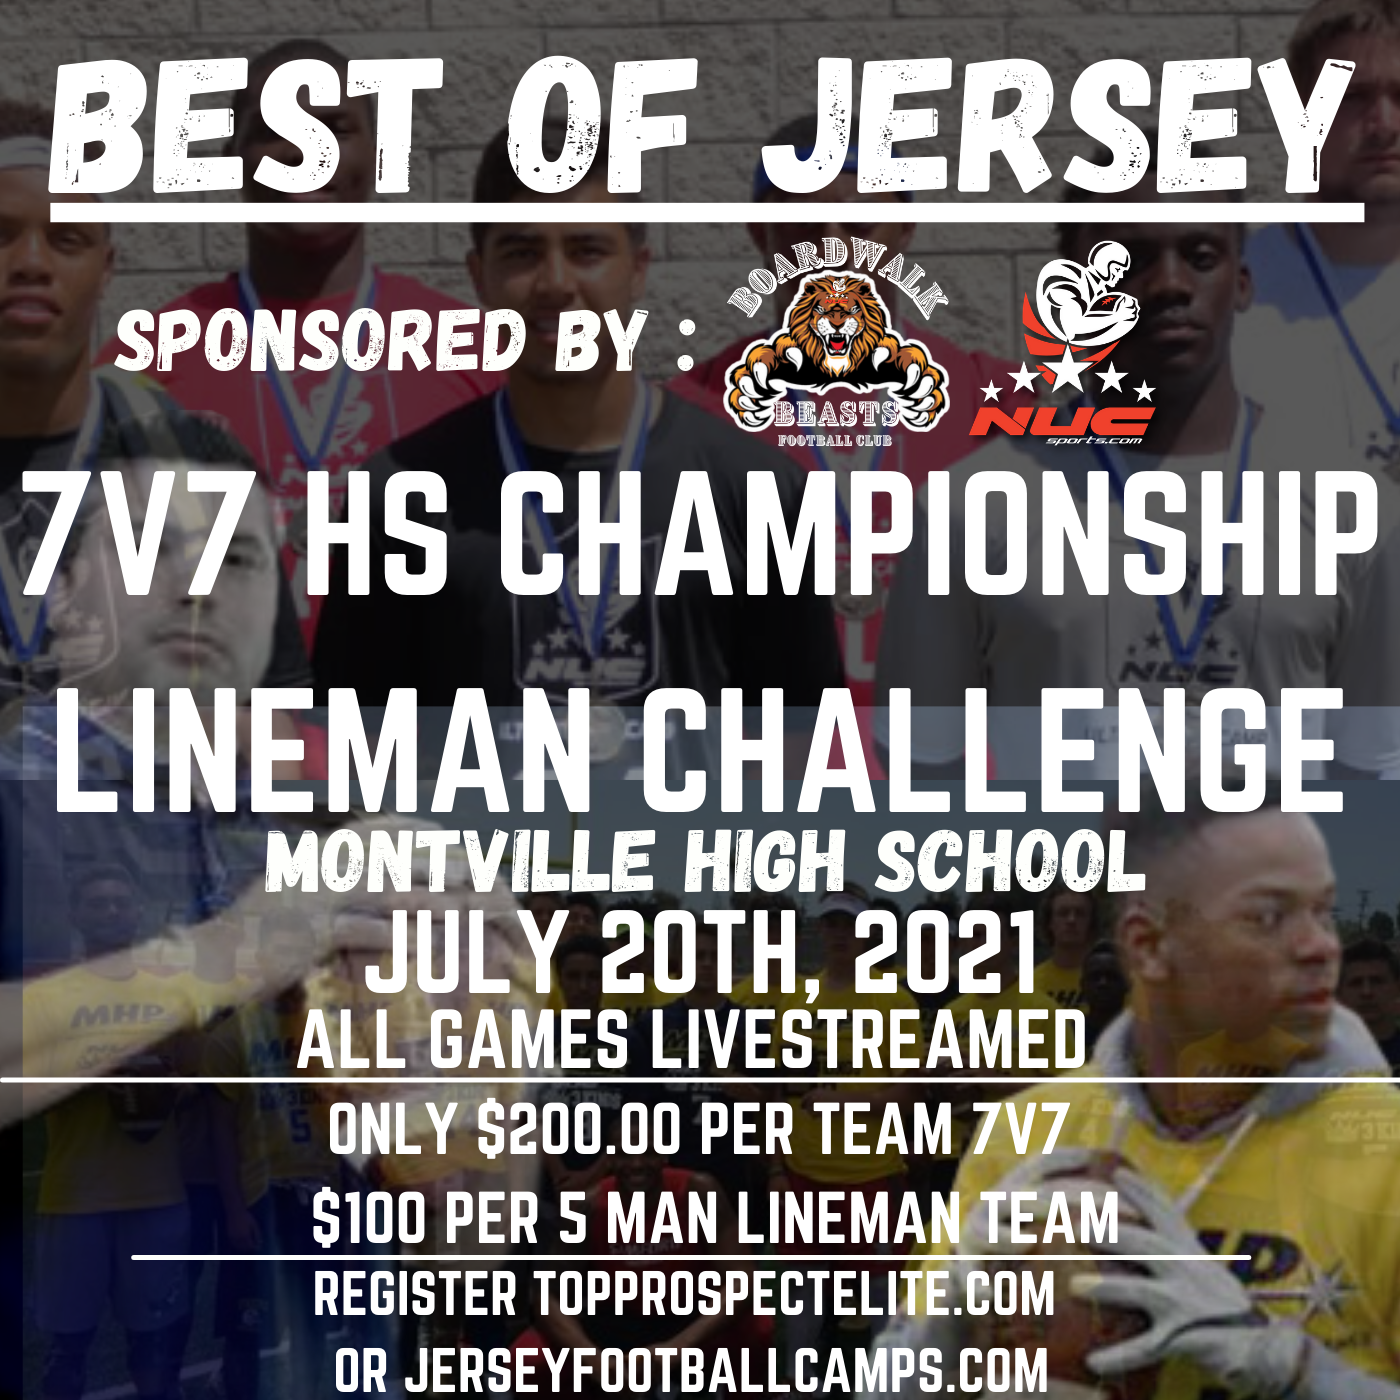 Best of Jersey 7v7 Tournament and Linemen Challenge, July 20th, 2021 Montville, NJ 24 Team Max